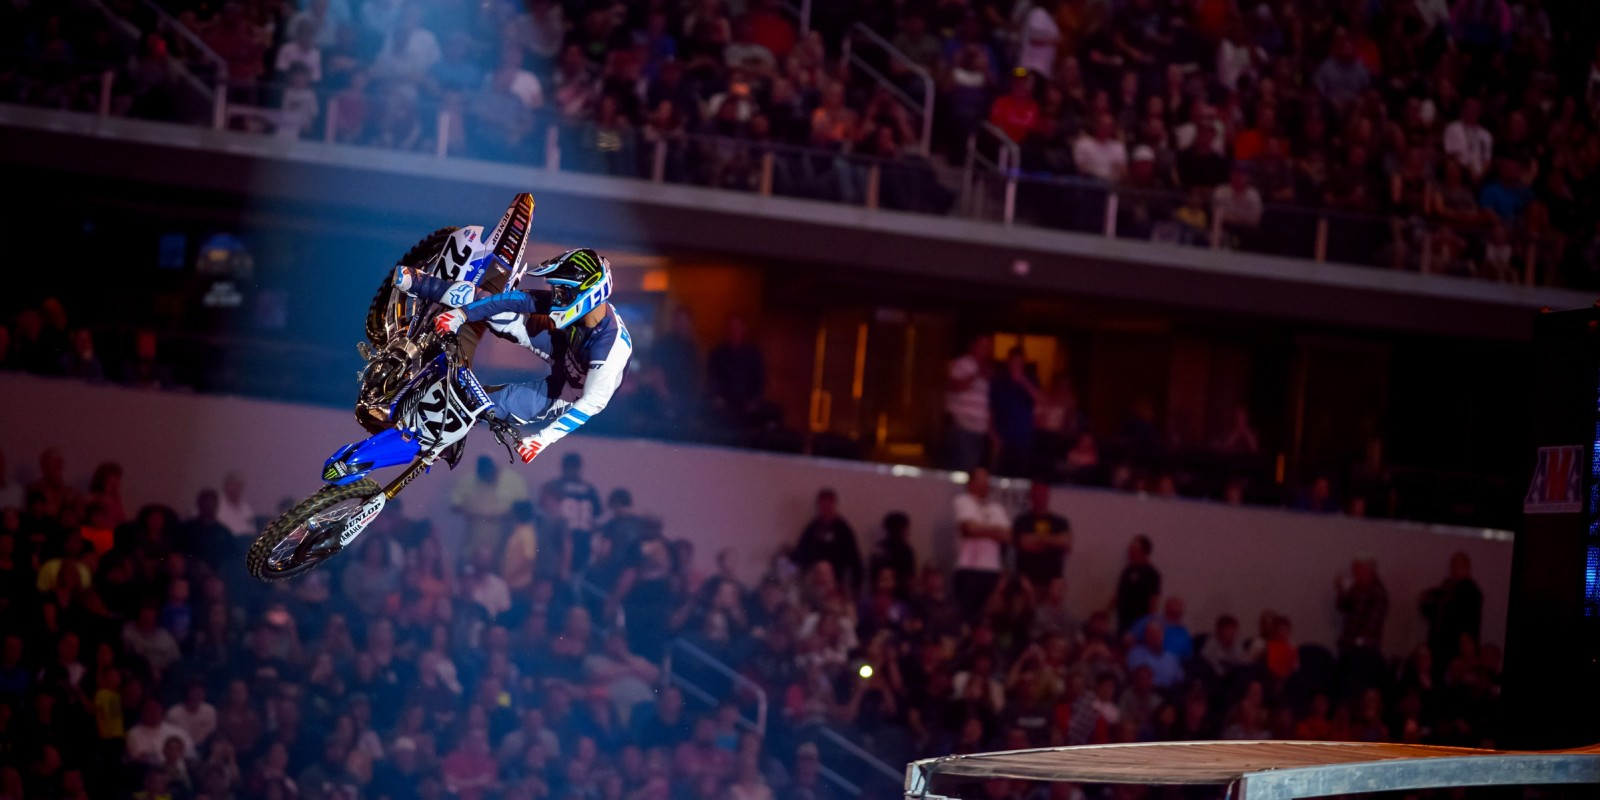 Chad Reed competes int he 2016 SX season in Arlington.